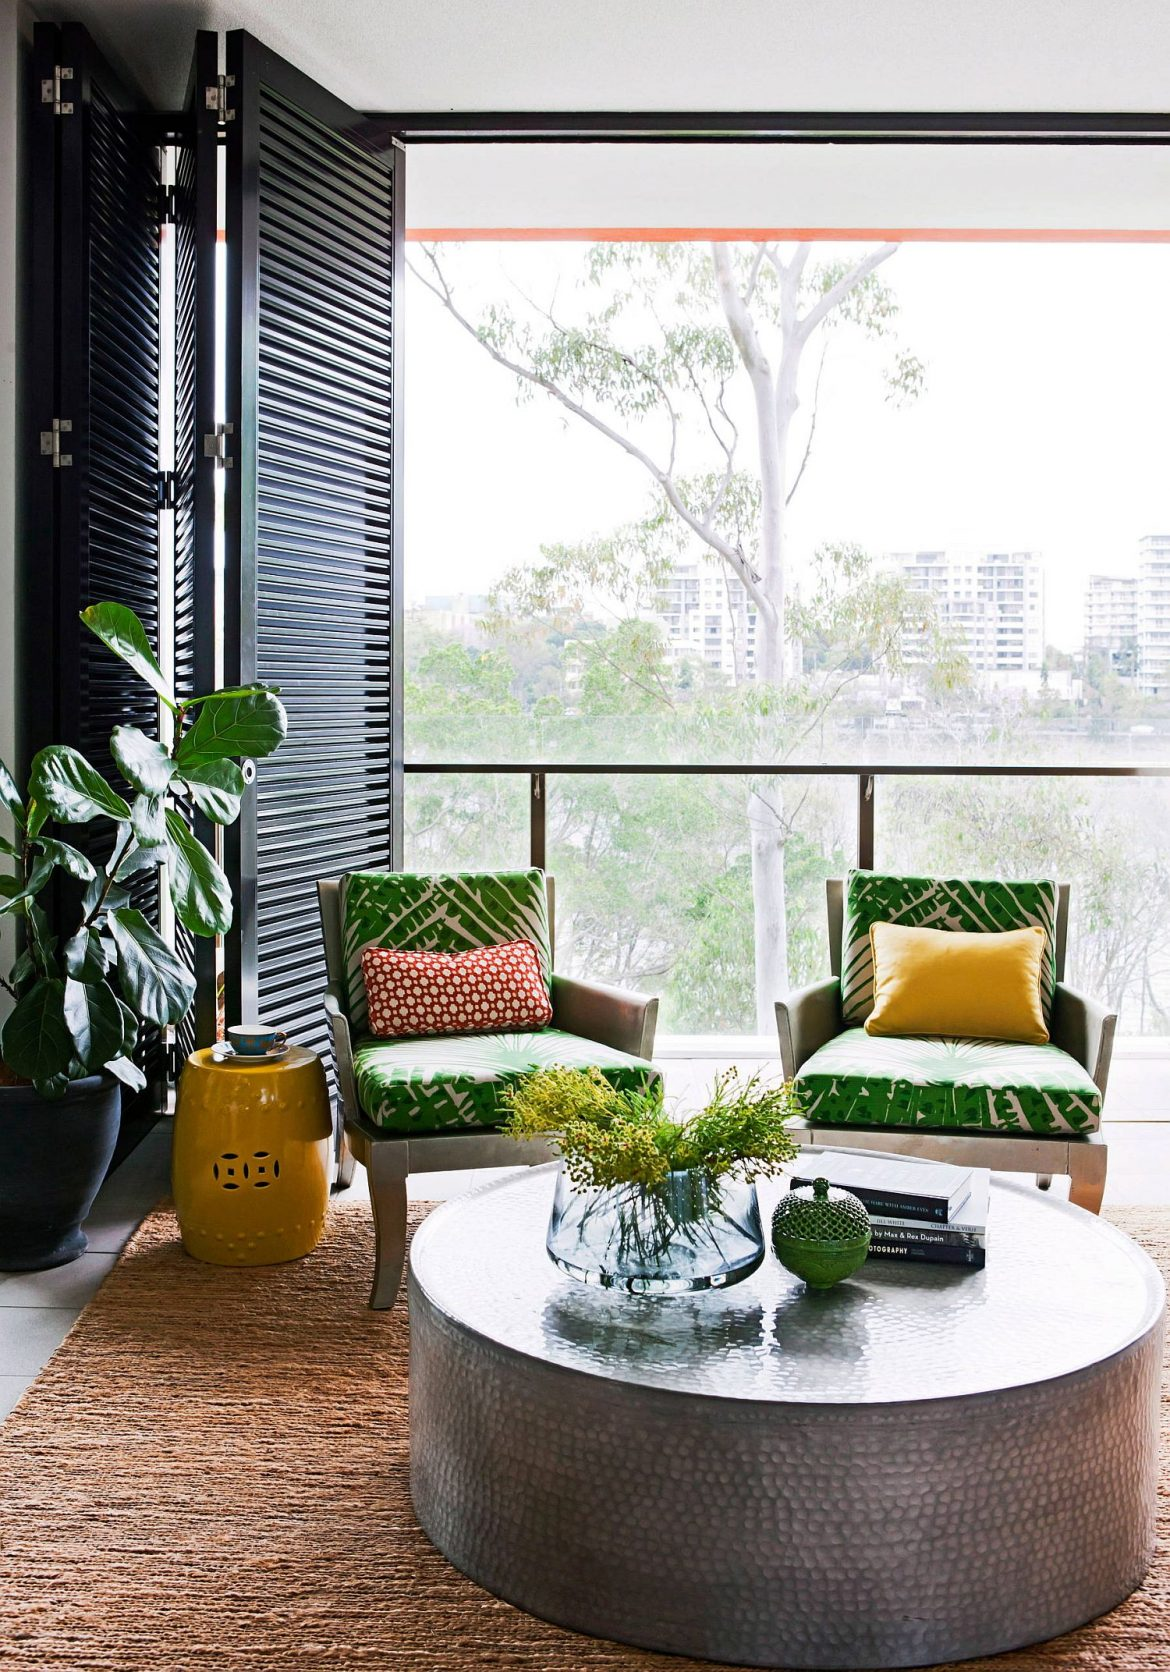 25 Tropical Living Rooms Showcase Ideas Full of Color and Personality